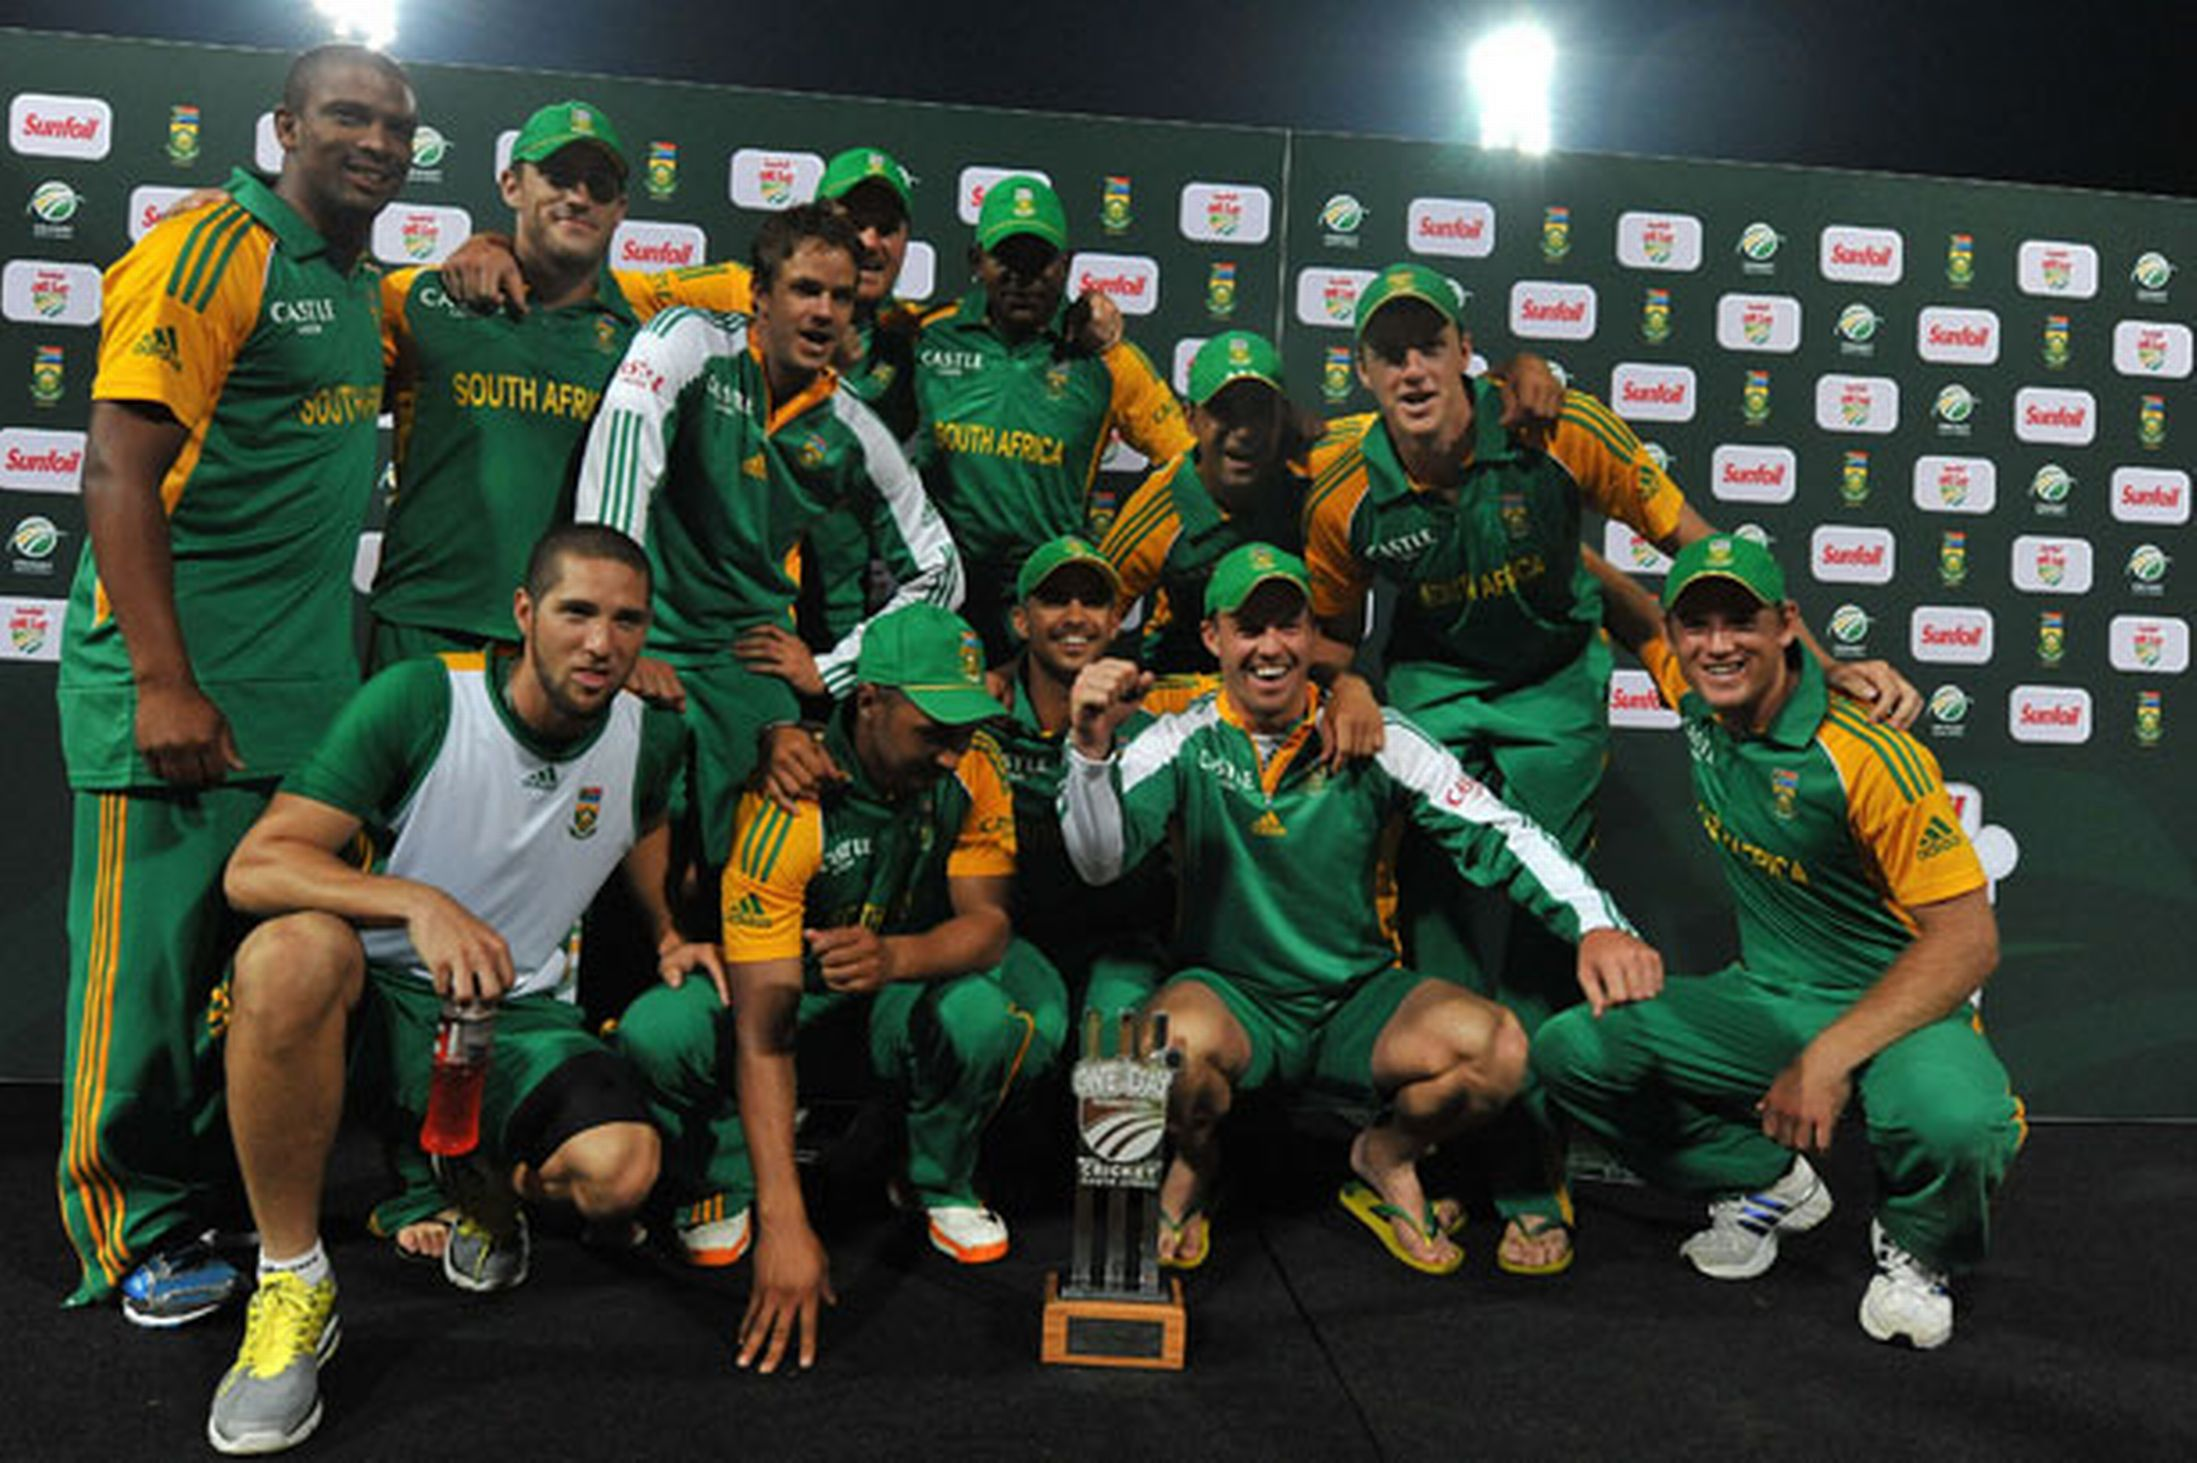 team south africa in the 2015 icc cricket world cup